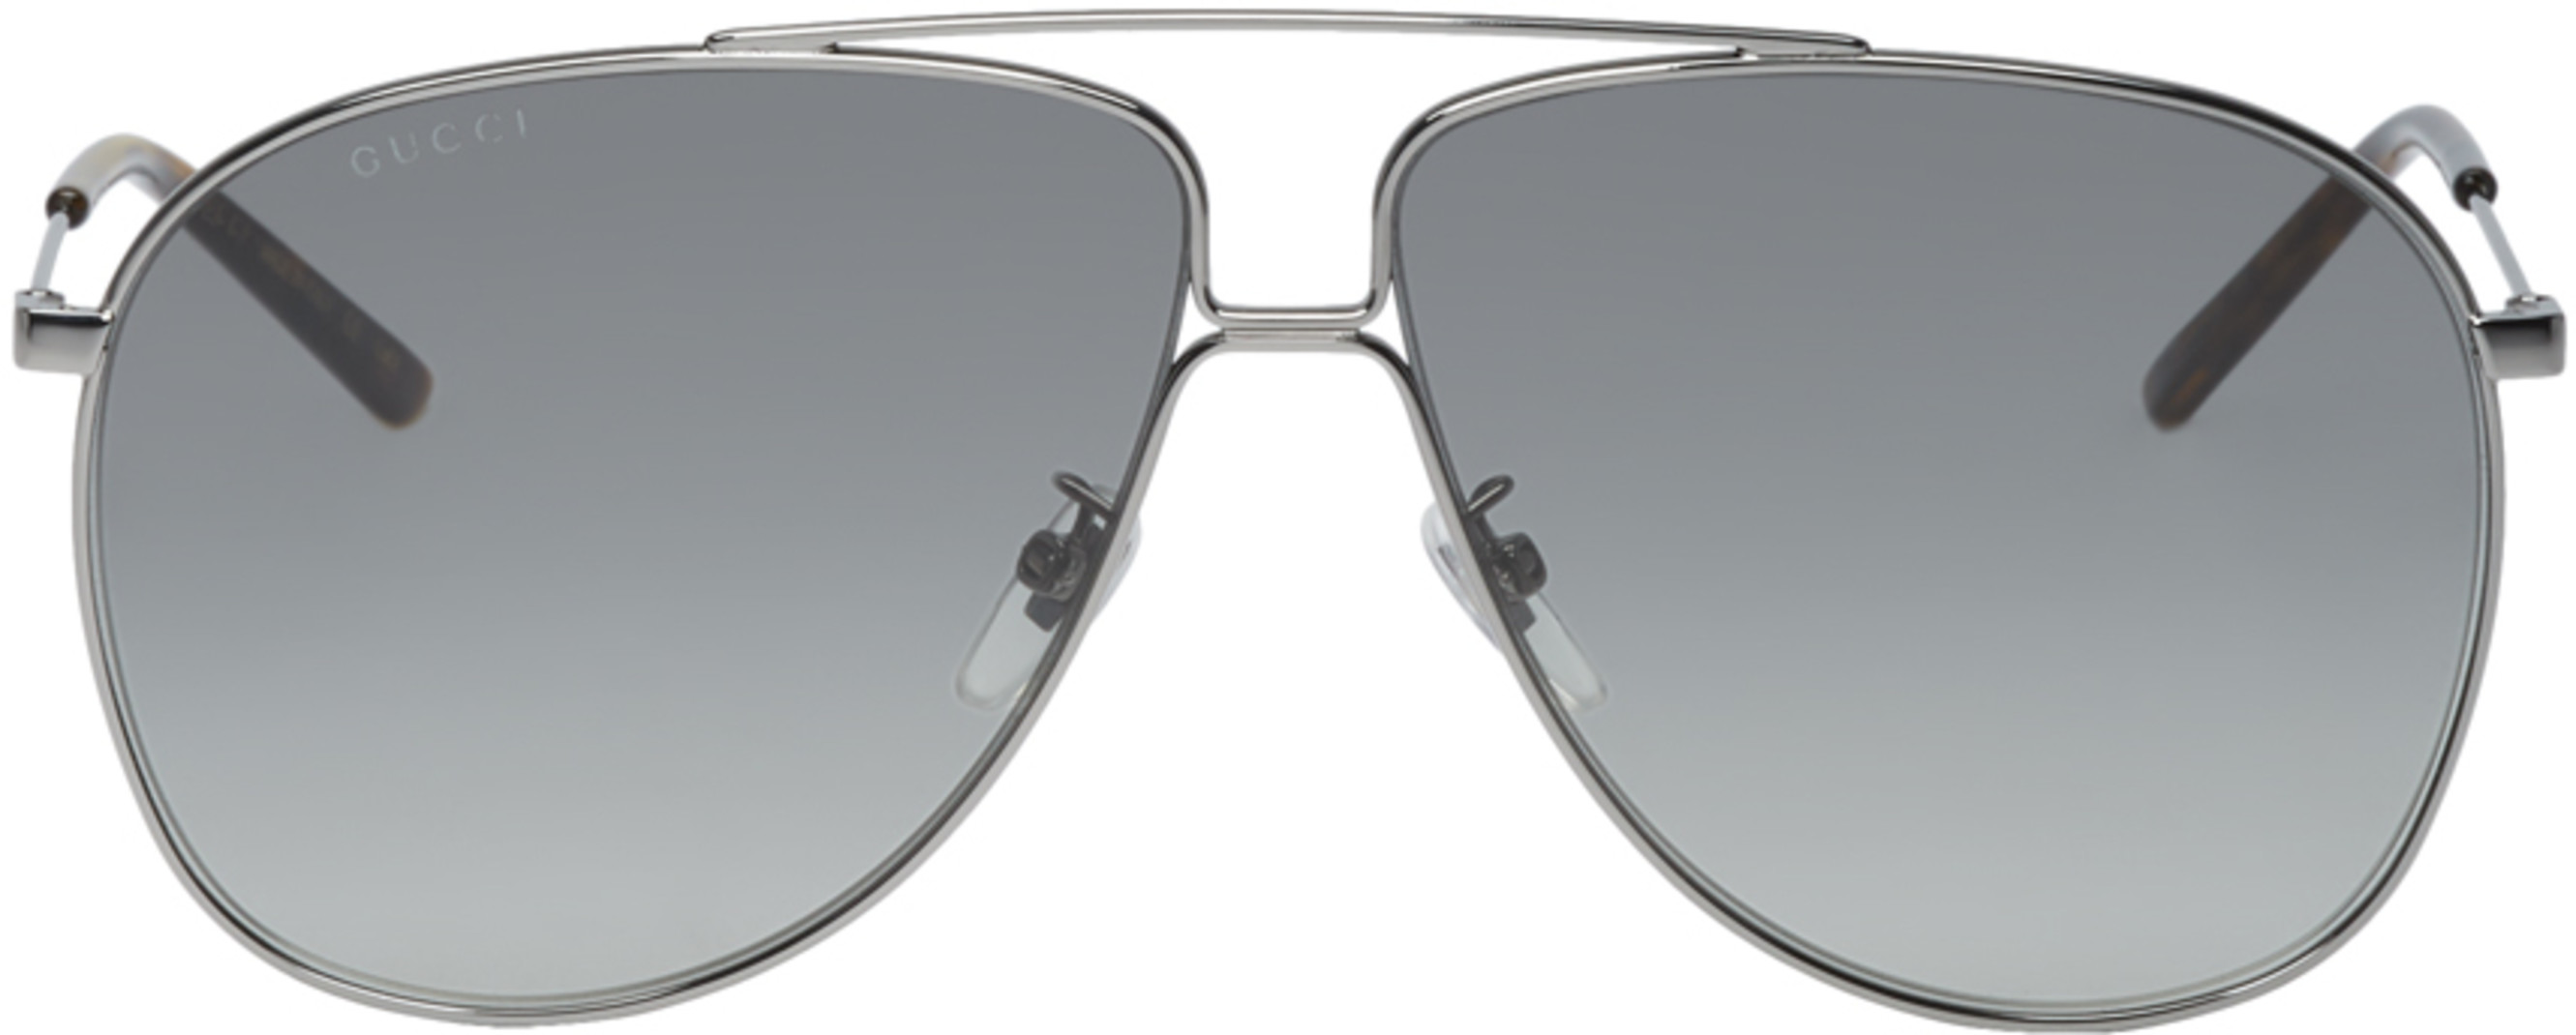 b0b3692891085 Gucci eyewear for Men